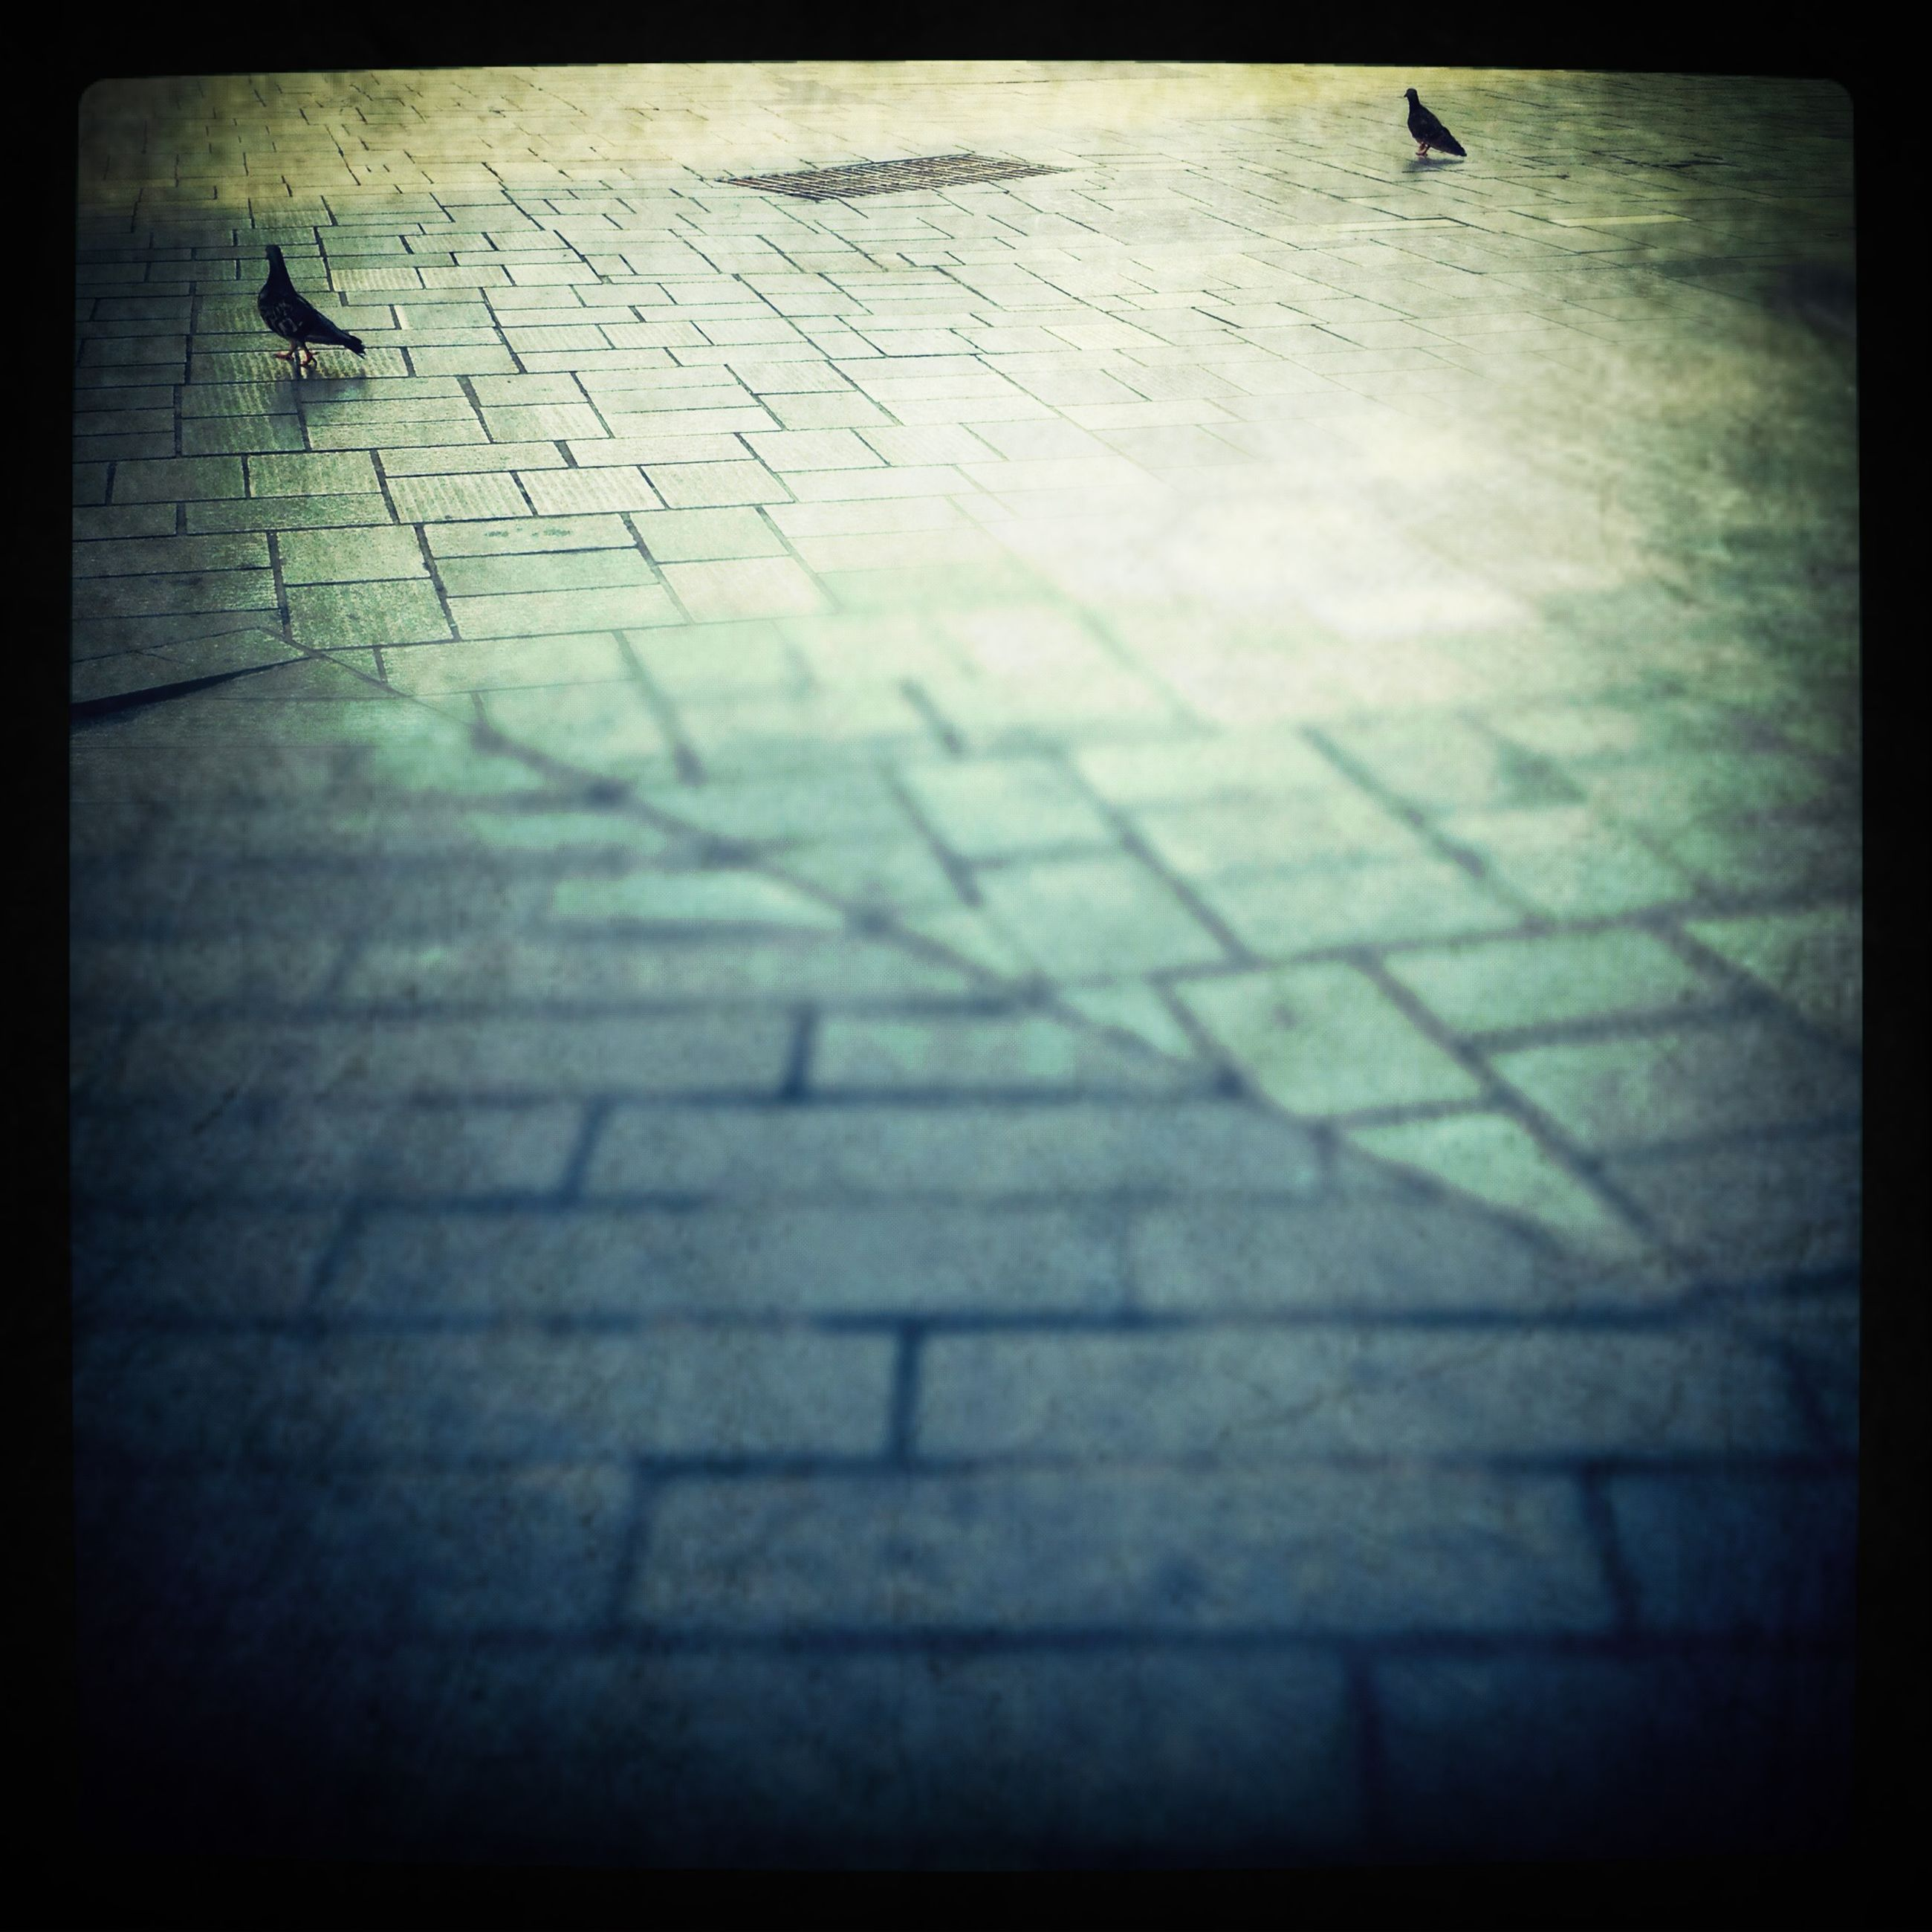 transfer print, auto post production filter, flying, bird, animal themes, high angle view, wildlife, street, day, outdoors, shadow, animals in the wild, sunlight, sidewalk, walking, built structure, spread wings, vignette, one animal, road marking